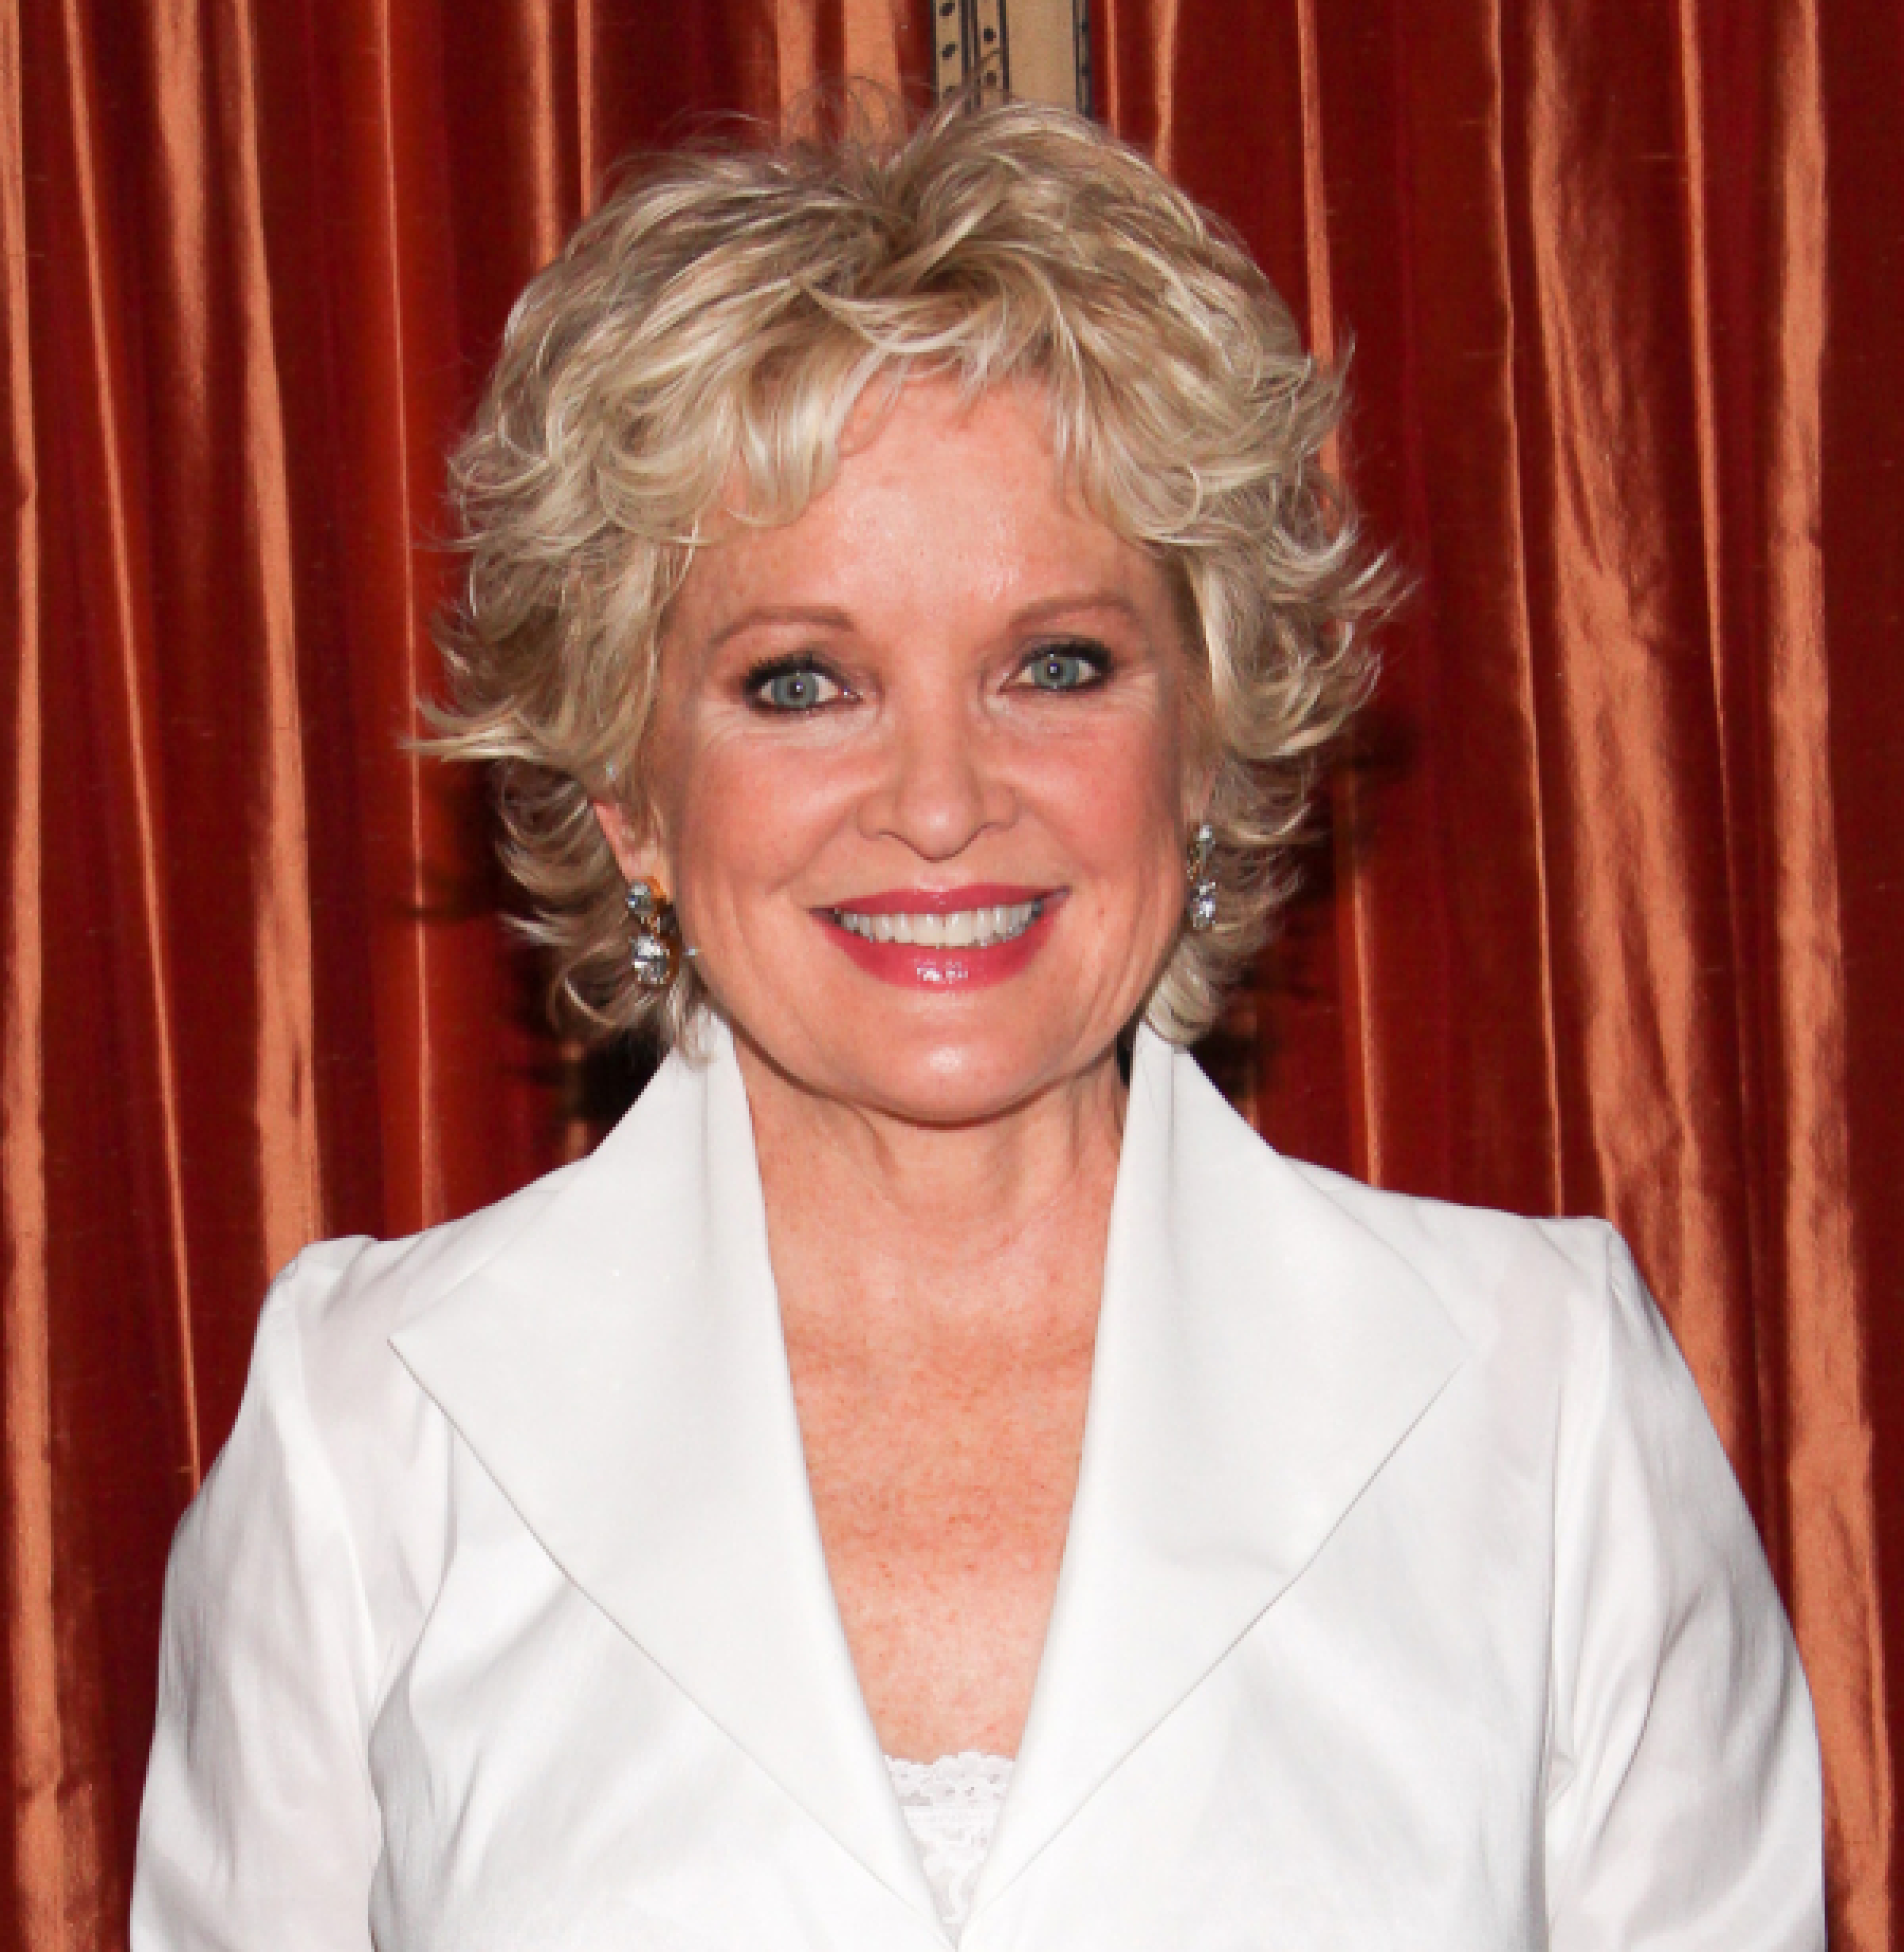 Discussion on this topic: Novie Edwards, christine-ebersole/